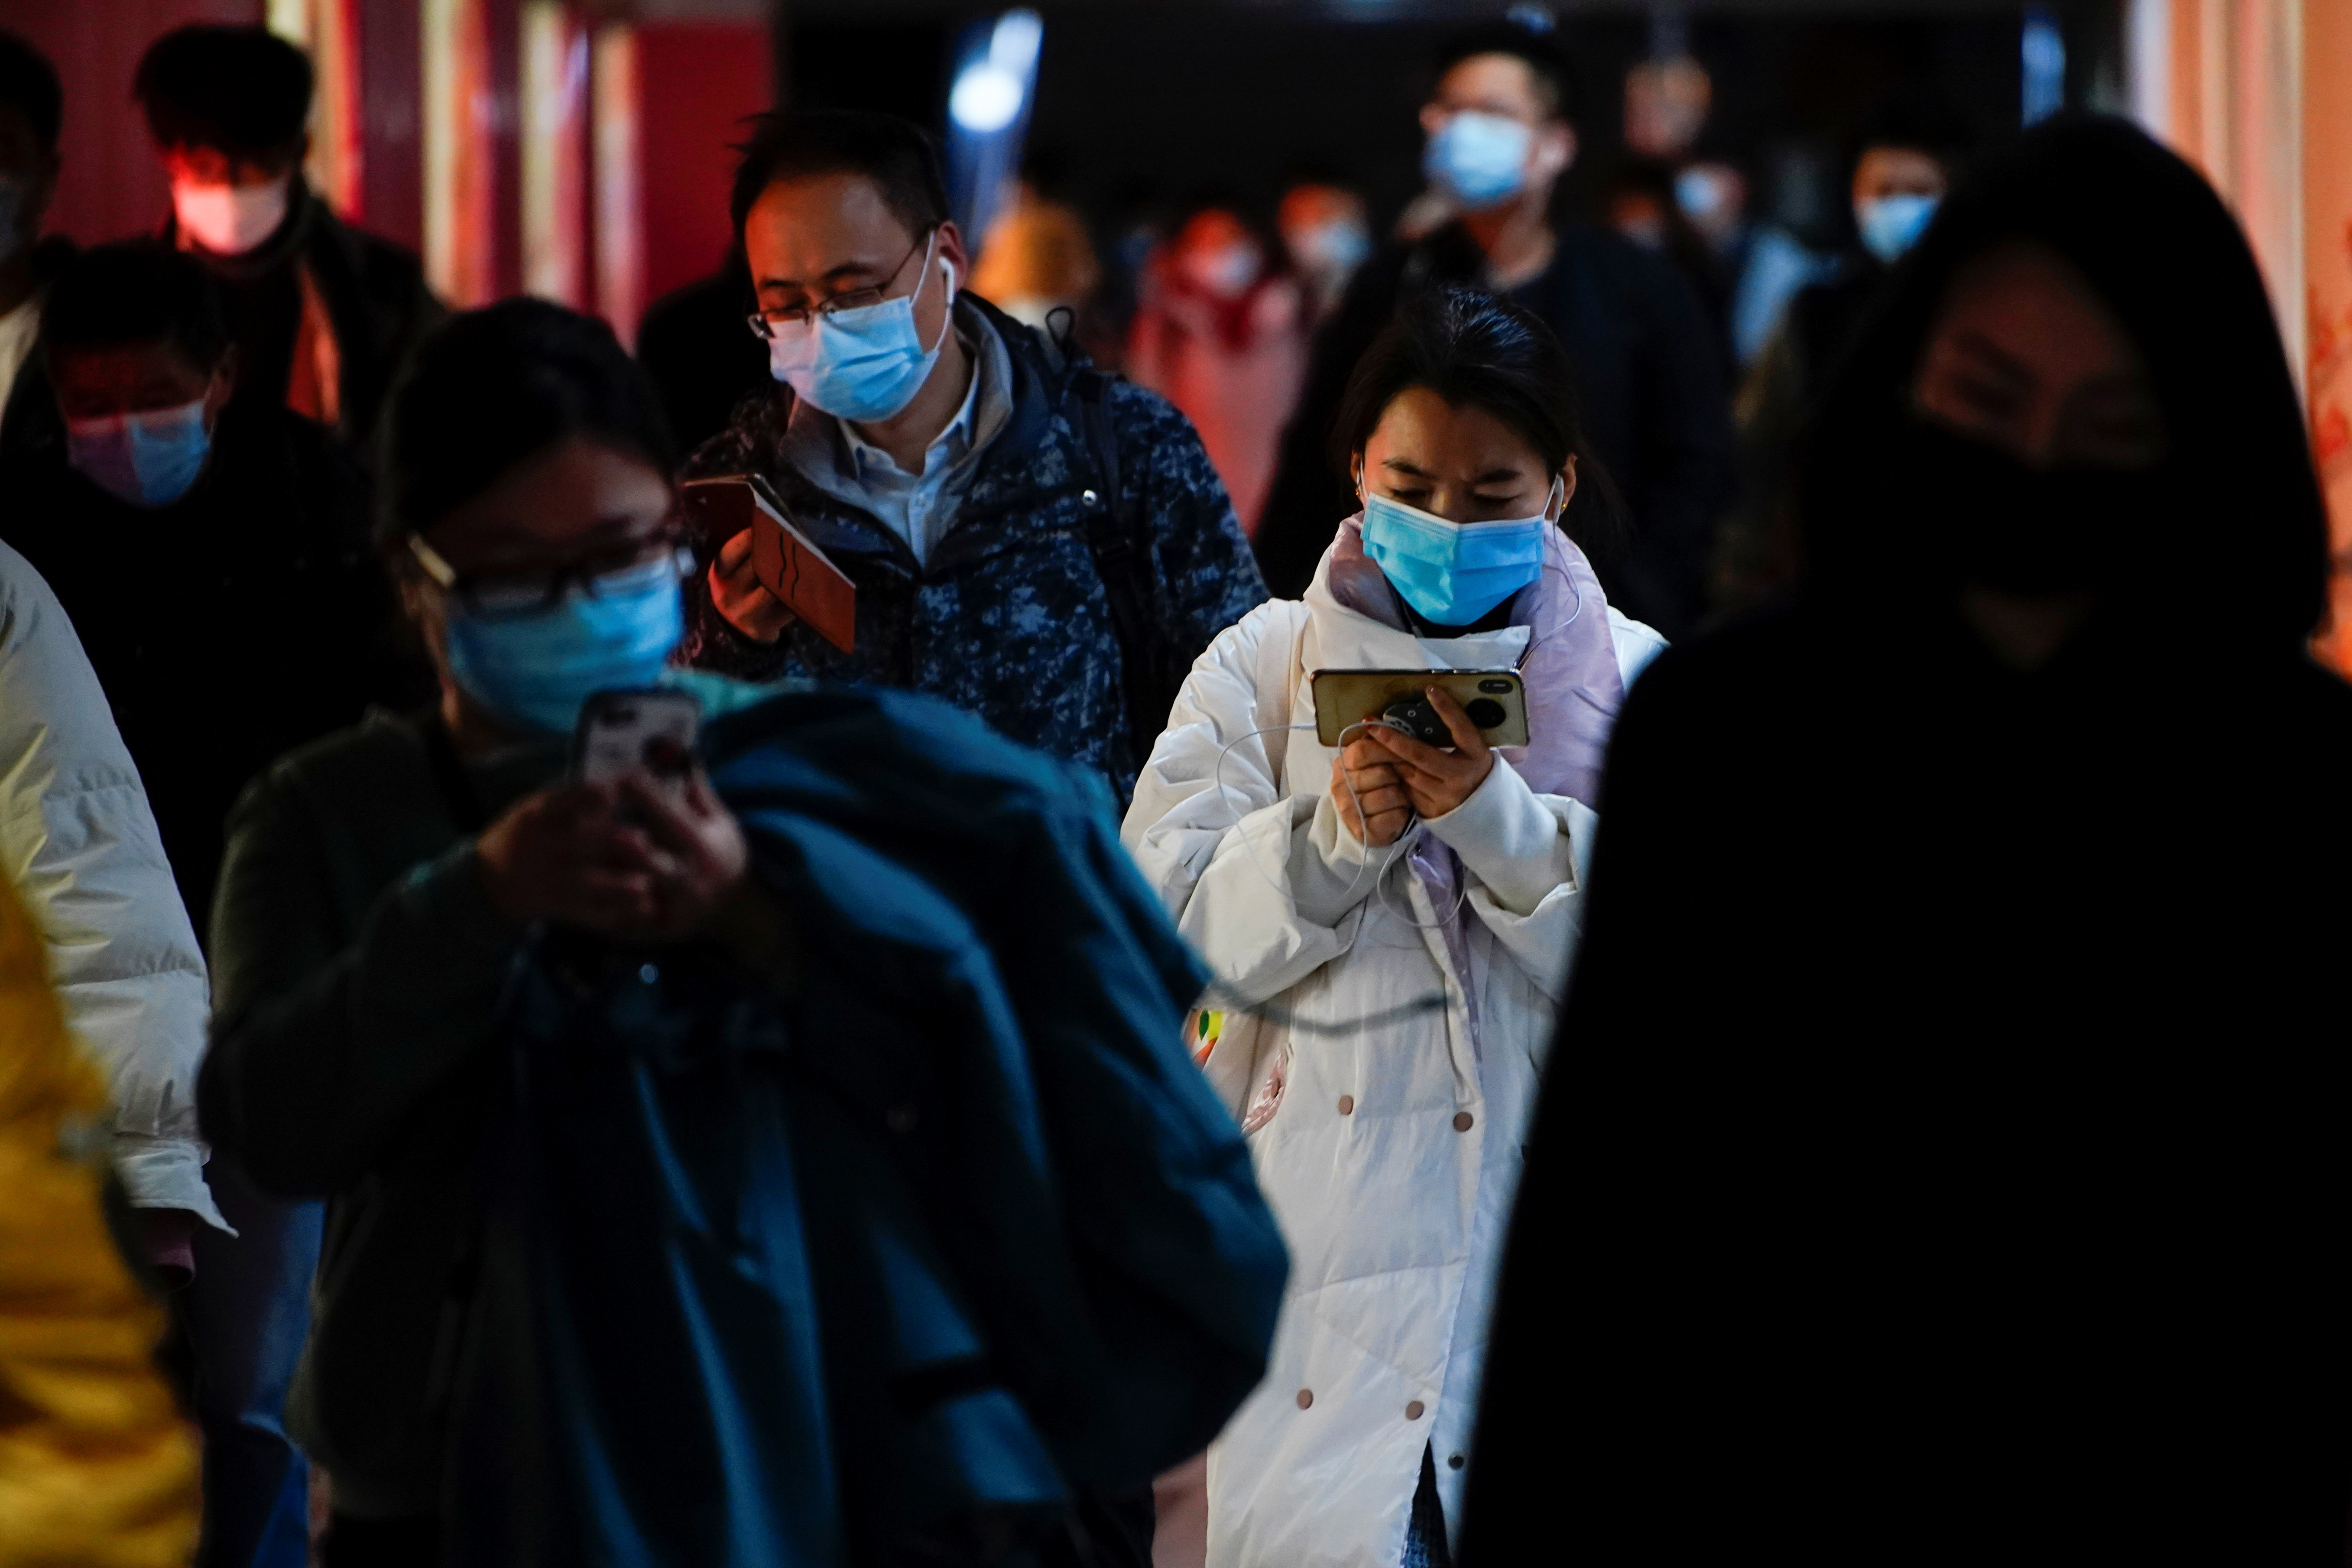 People wearing face masks use their cellphones at a subway station following the coronavirus disease (COVID-19) outbreak, in Shanghai, China January 25, 2021. REUTERS/Aly Song